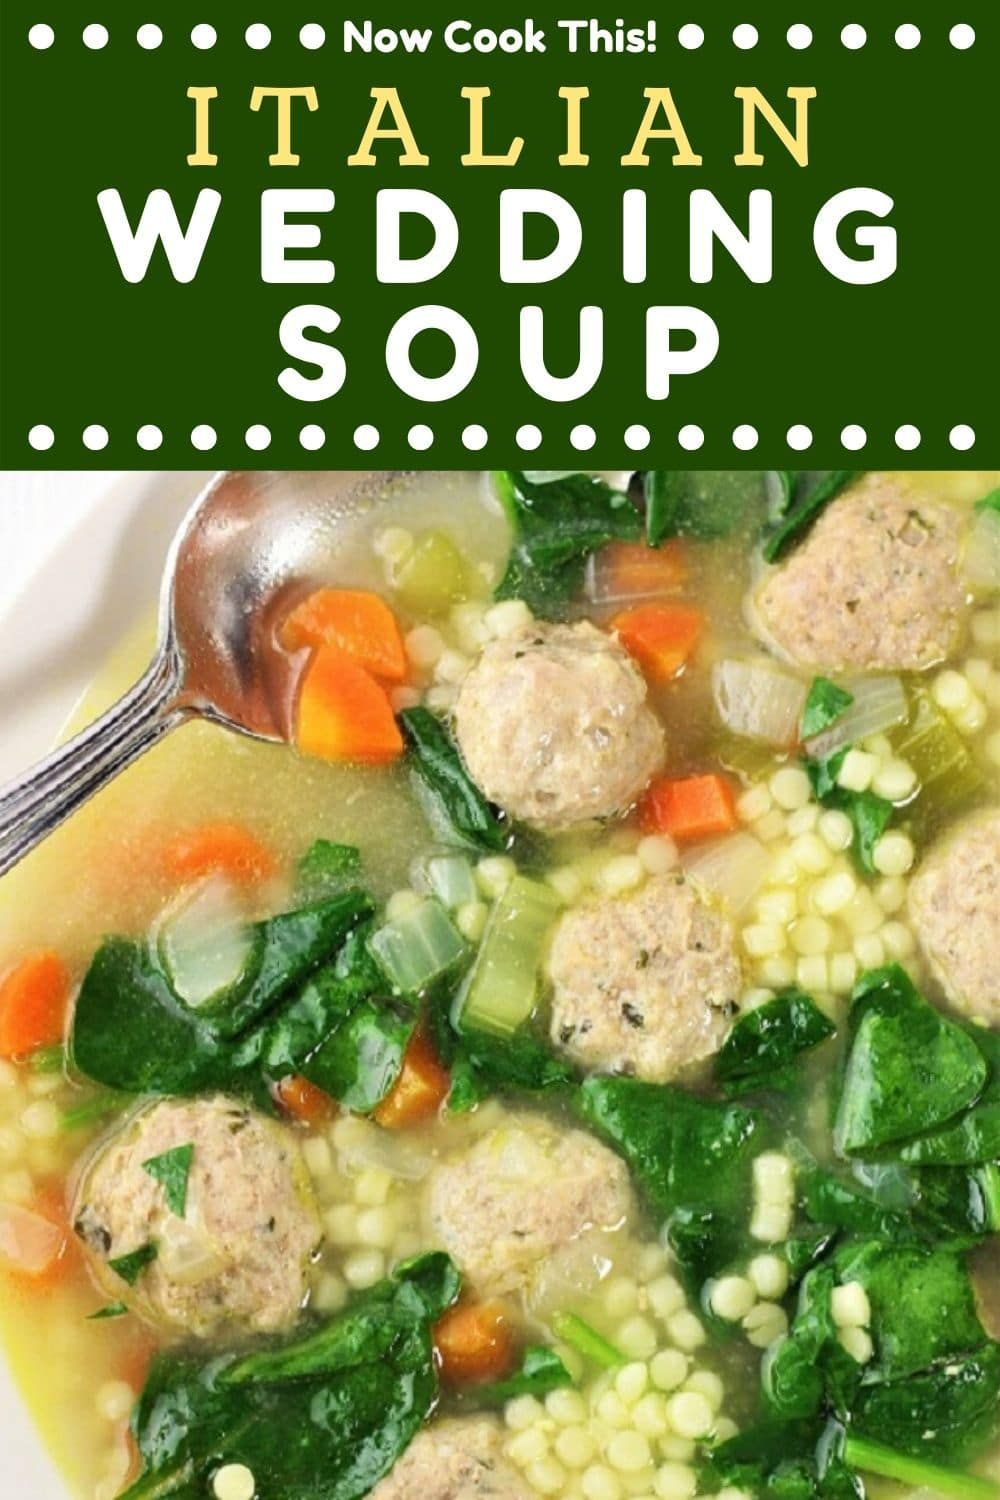 Italian Wedding Soup Now Cook This Recipe In 2020 Italian Wedding Soup Wedding Soup Cooking